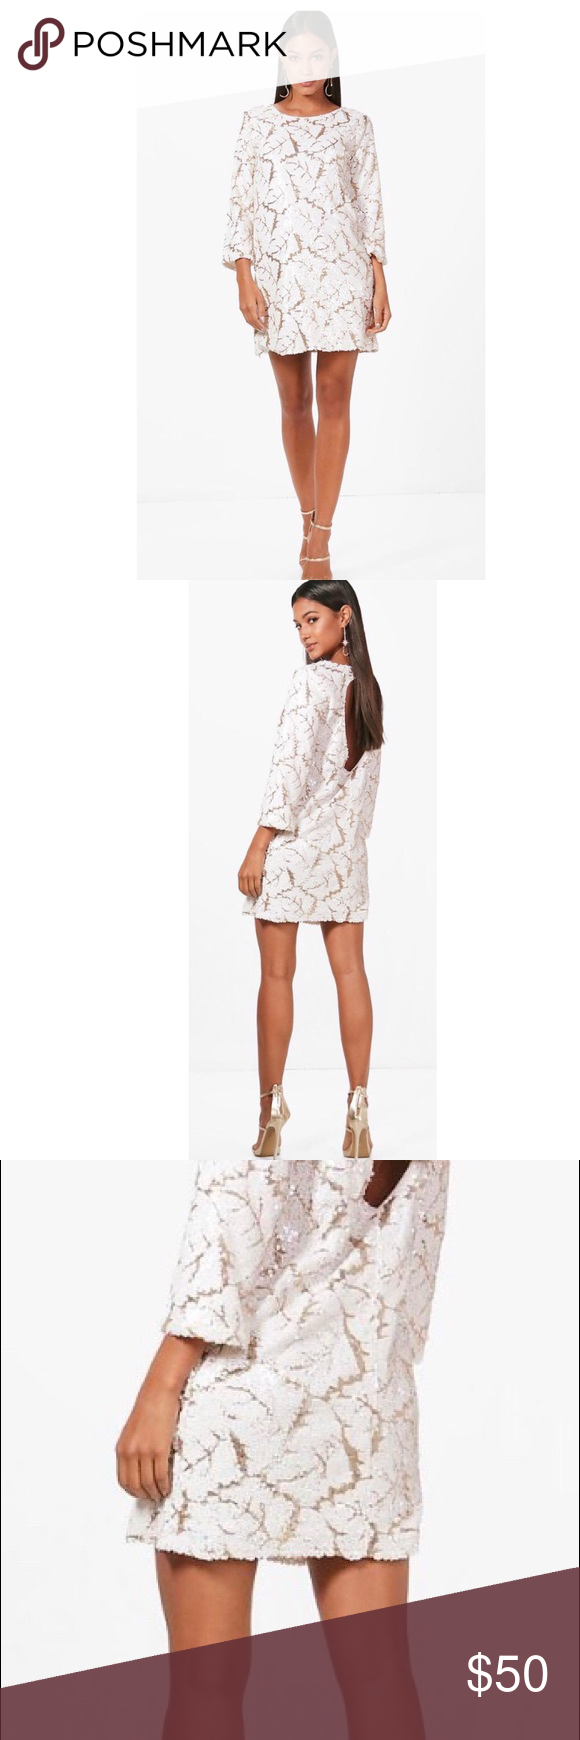 Sexy whitegold sequin dress holiday ready absolutely fabulous